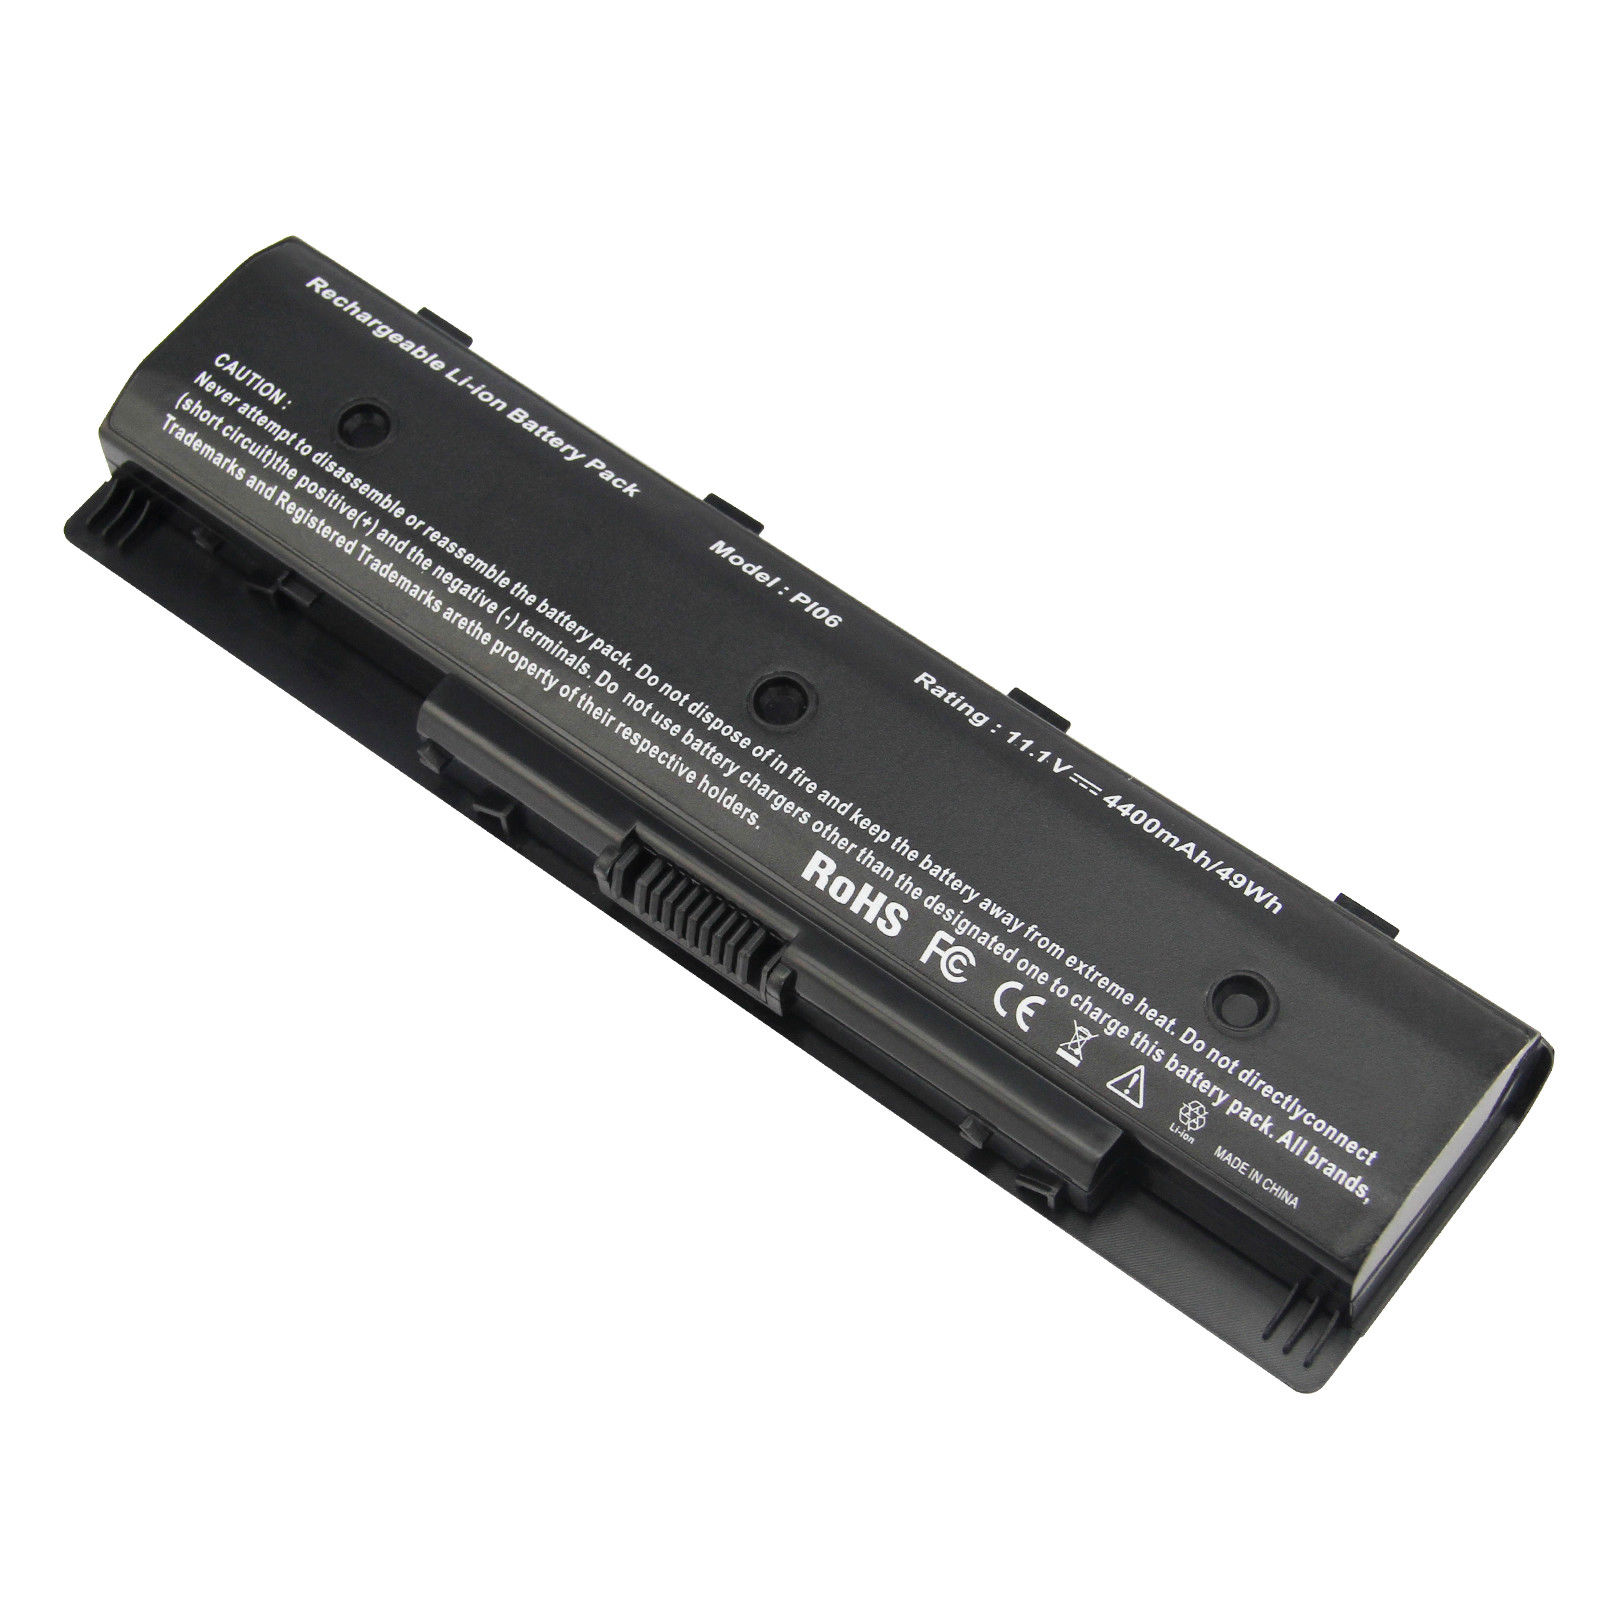 Replacement Hp Envy 15-j000 Battery